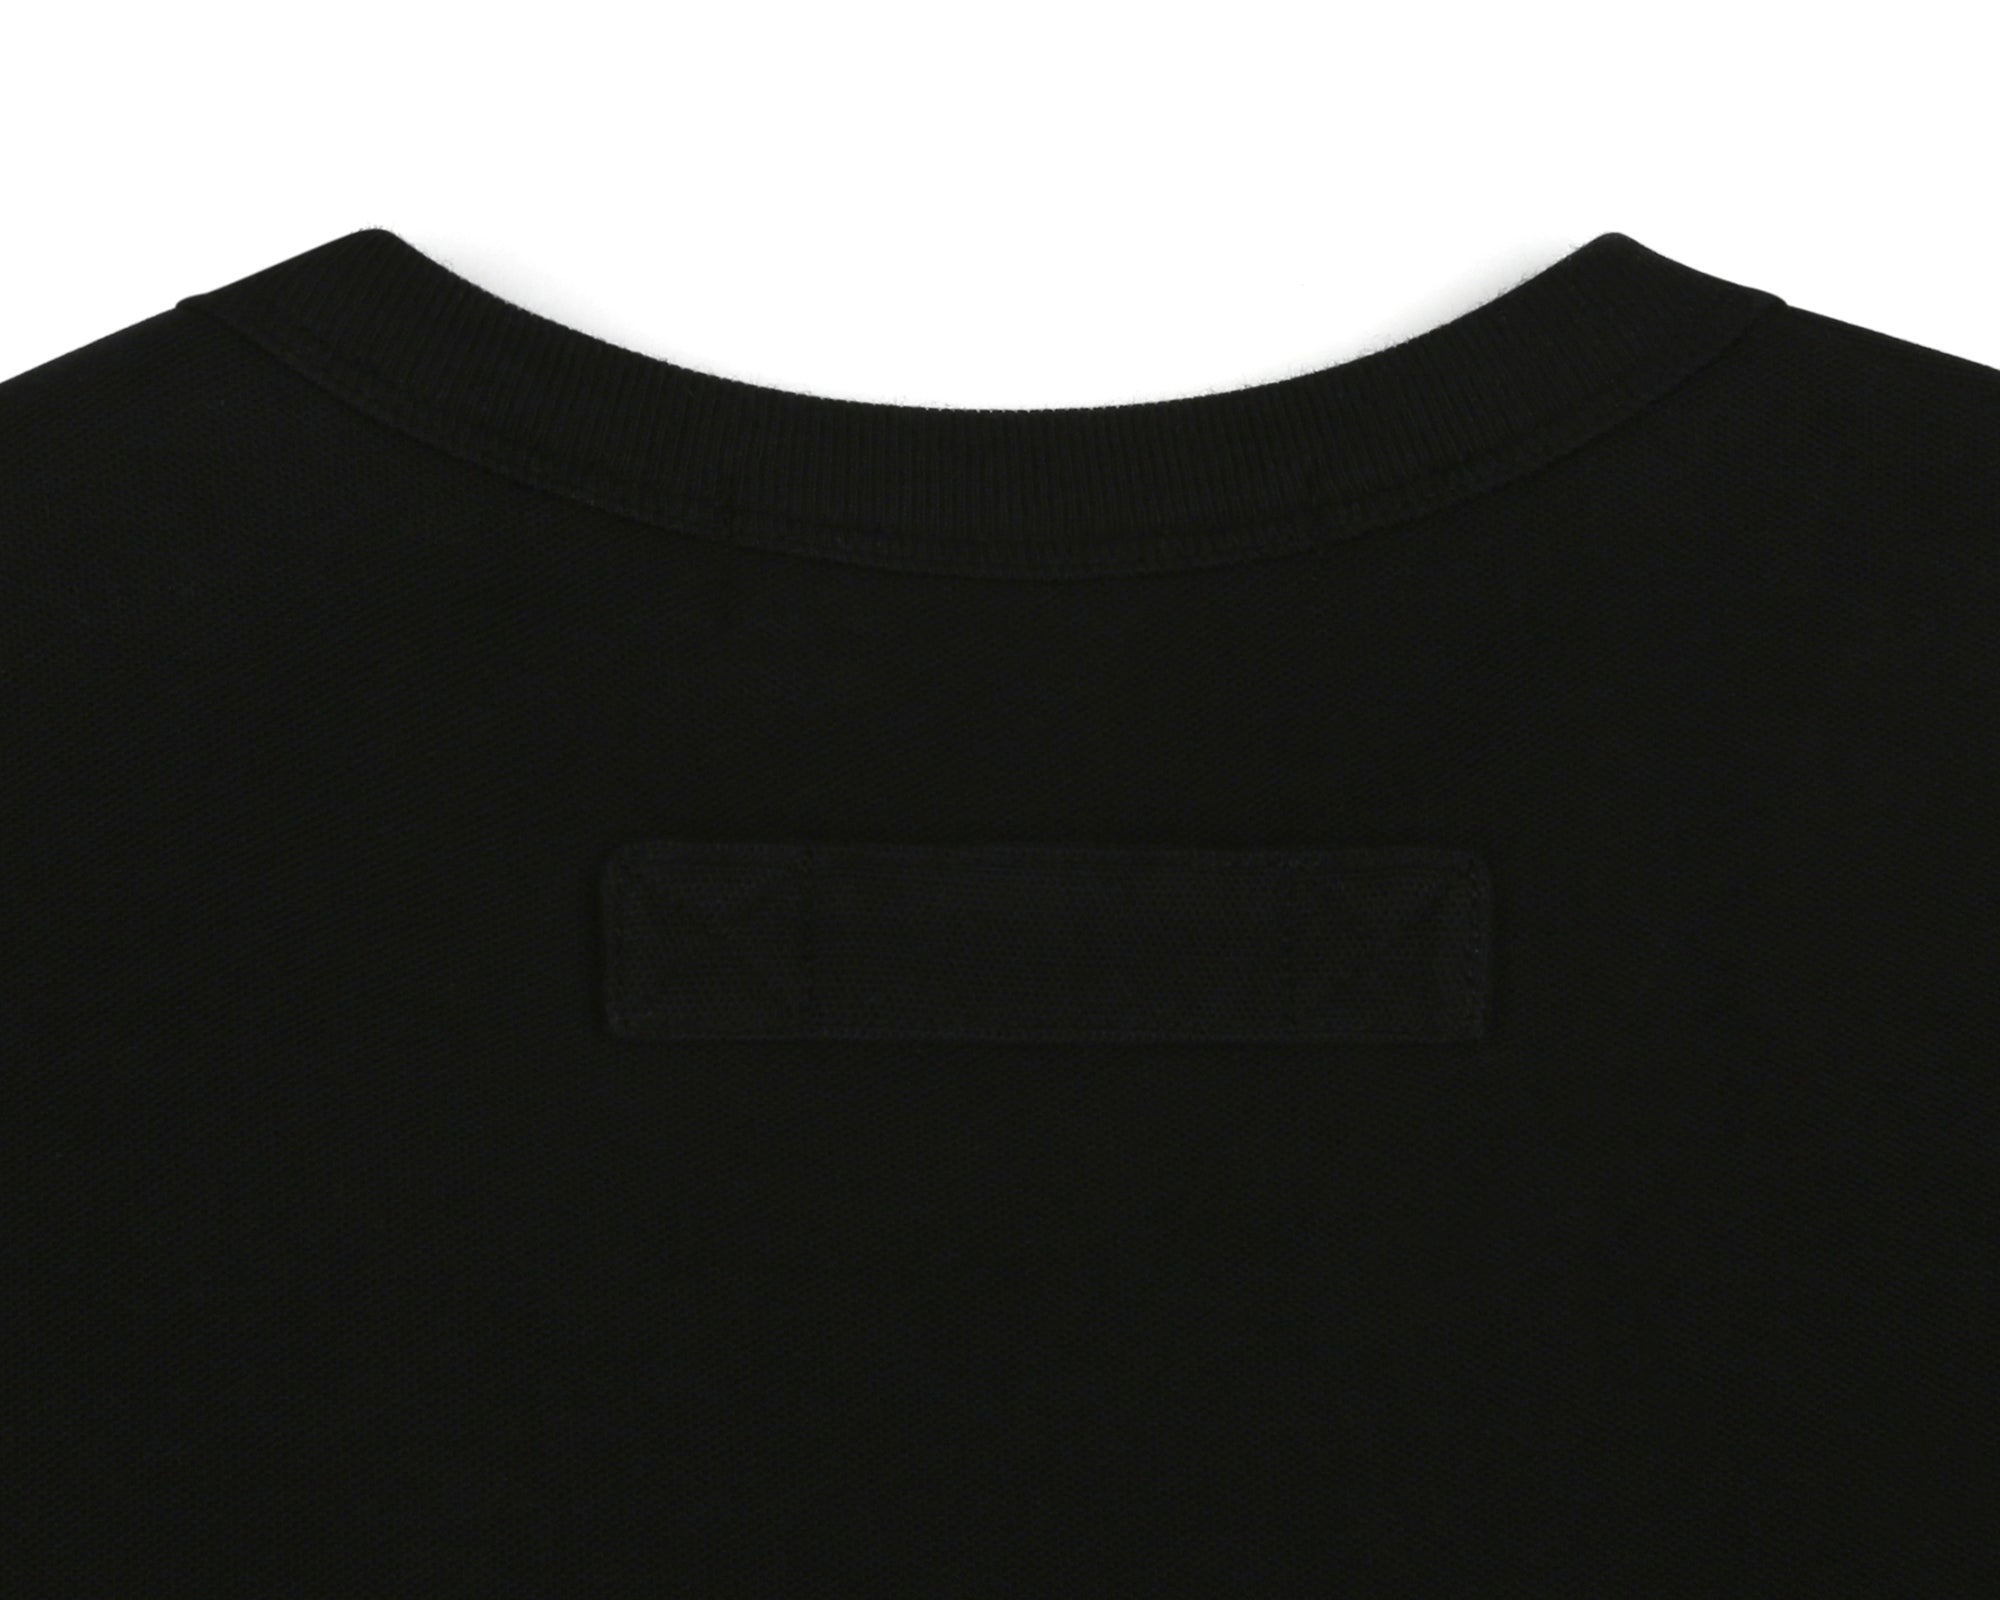 HEAVY PIQUE COTTON T-SHIRT- BLACK